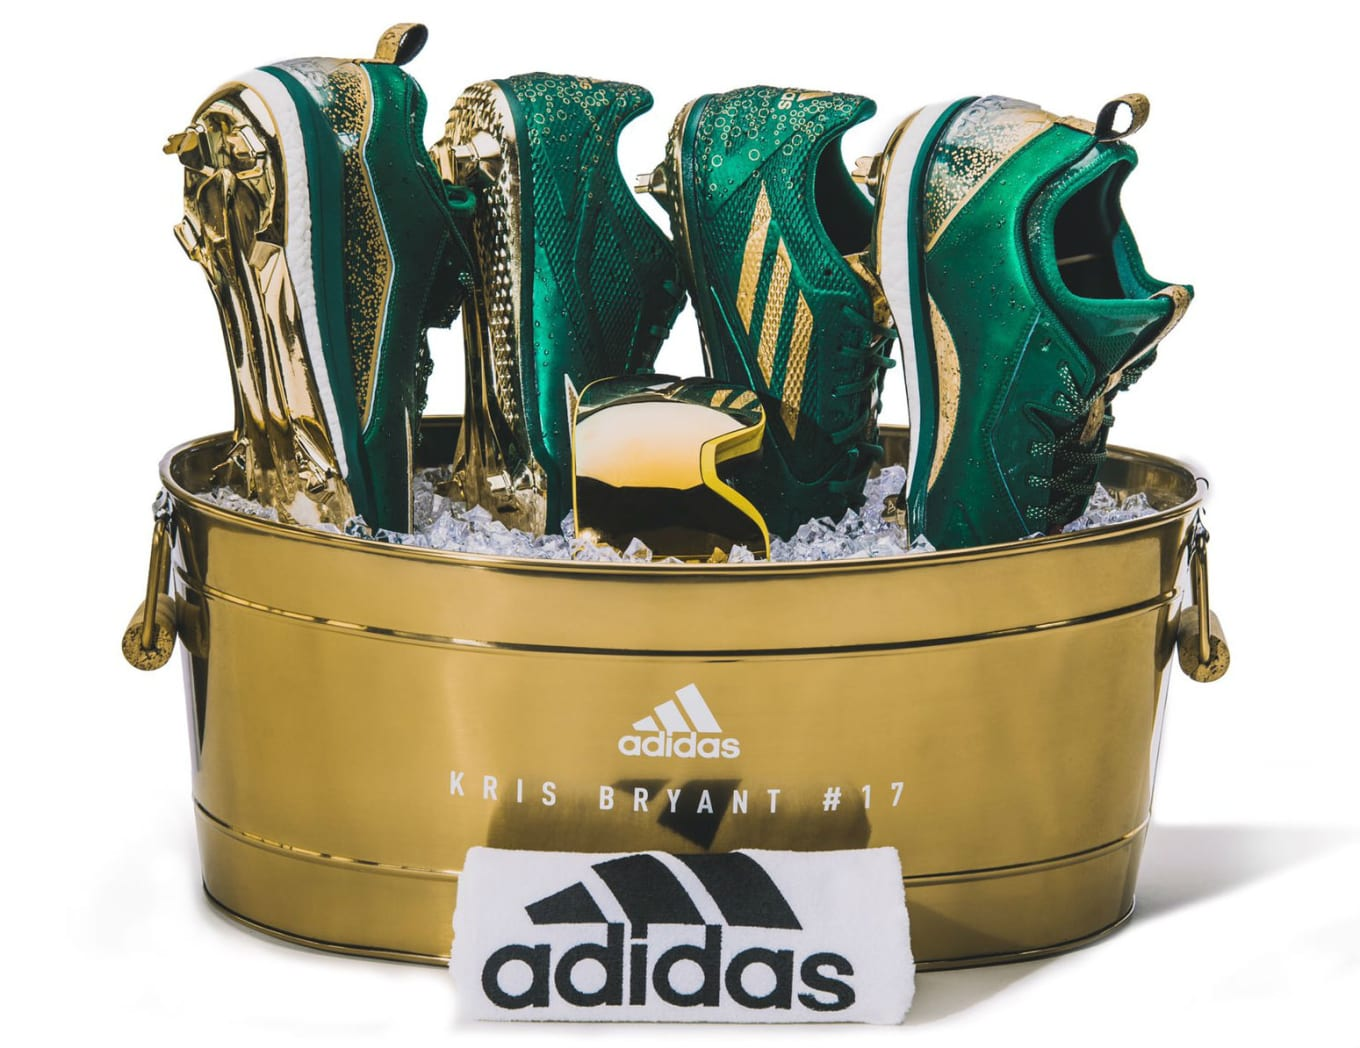 af2804f5f3ec Adidas Is Sending Kris Bryant to the Playoffs in Champagne Cleats